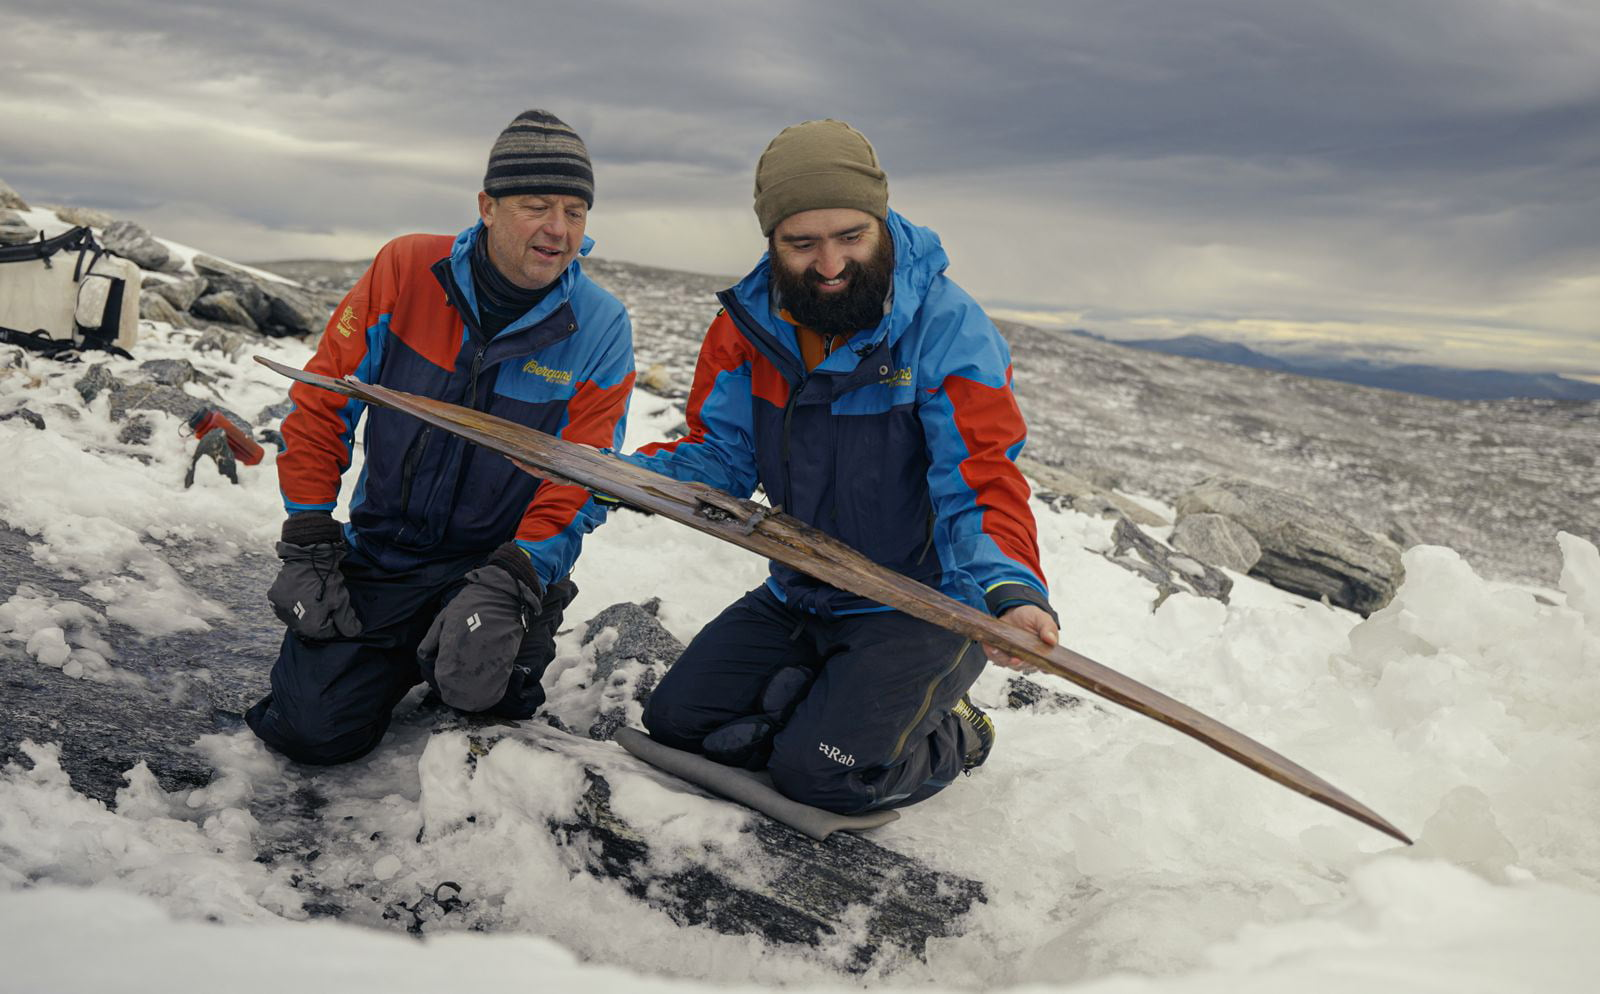 Historic ski discovery in Norway